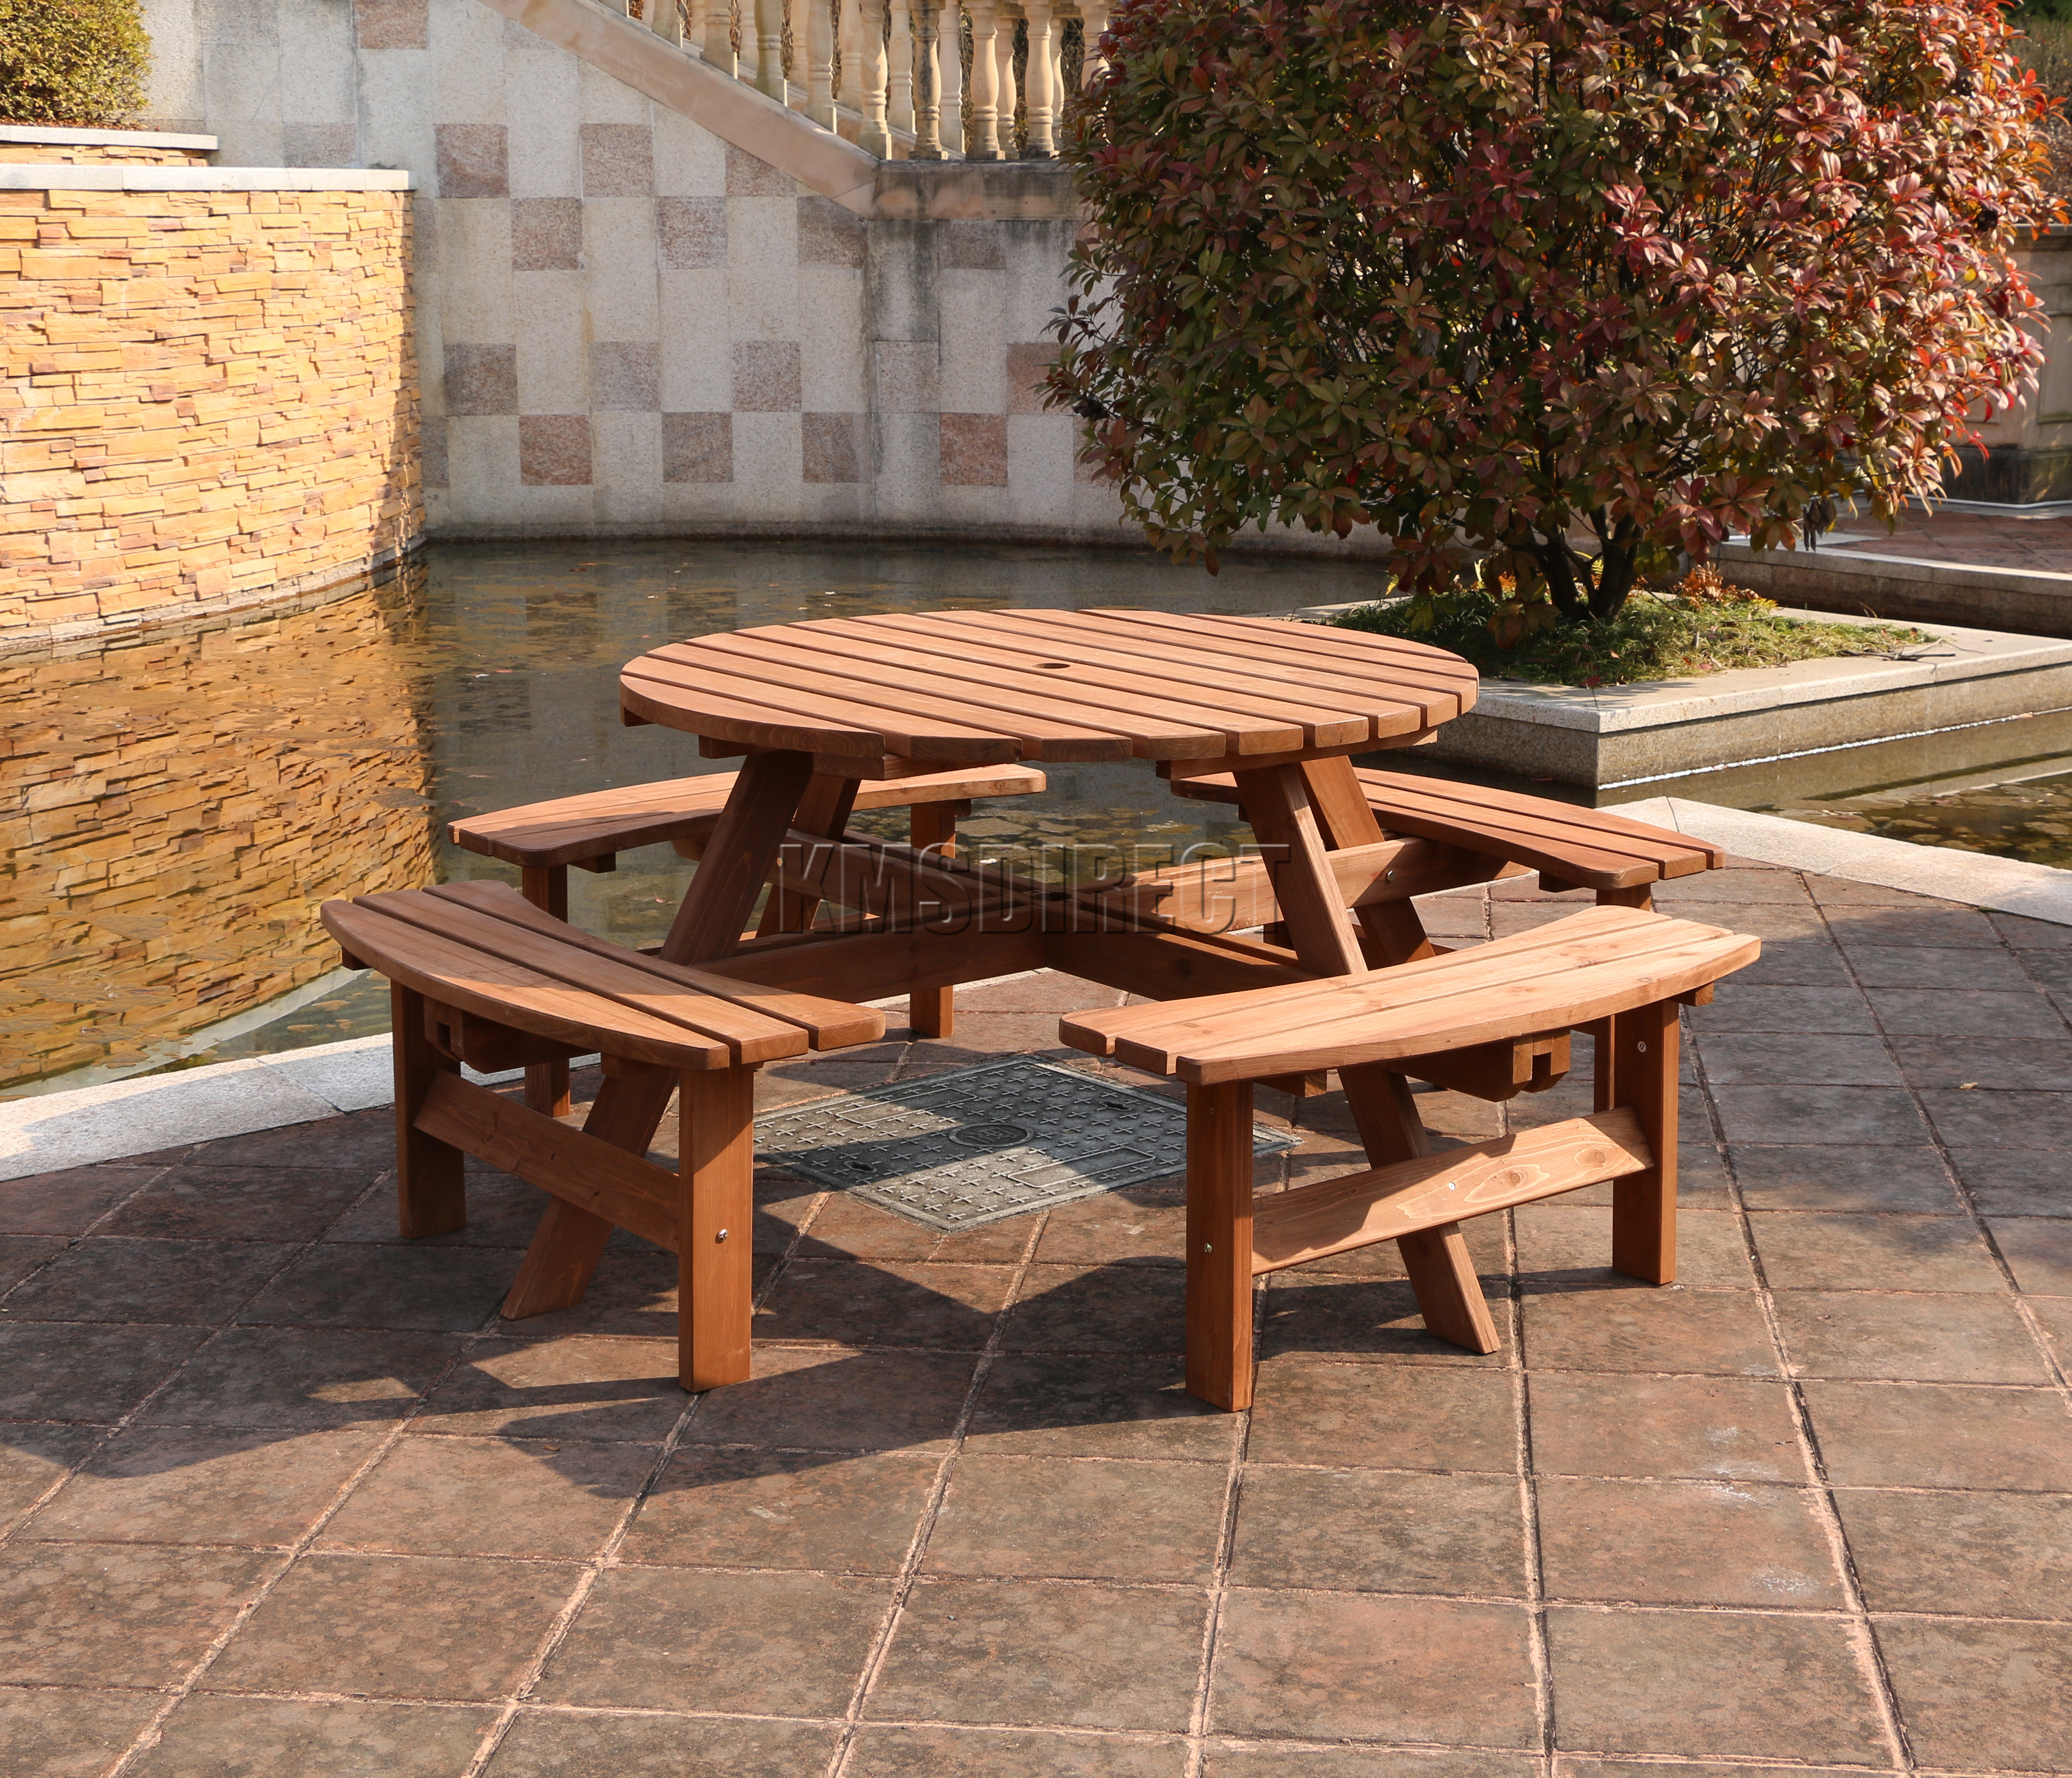 Garden Furniture 8 Seater new 8 seater wooden pub bench round picnic beer table furniture